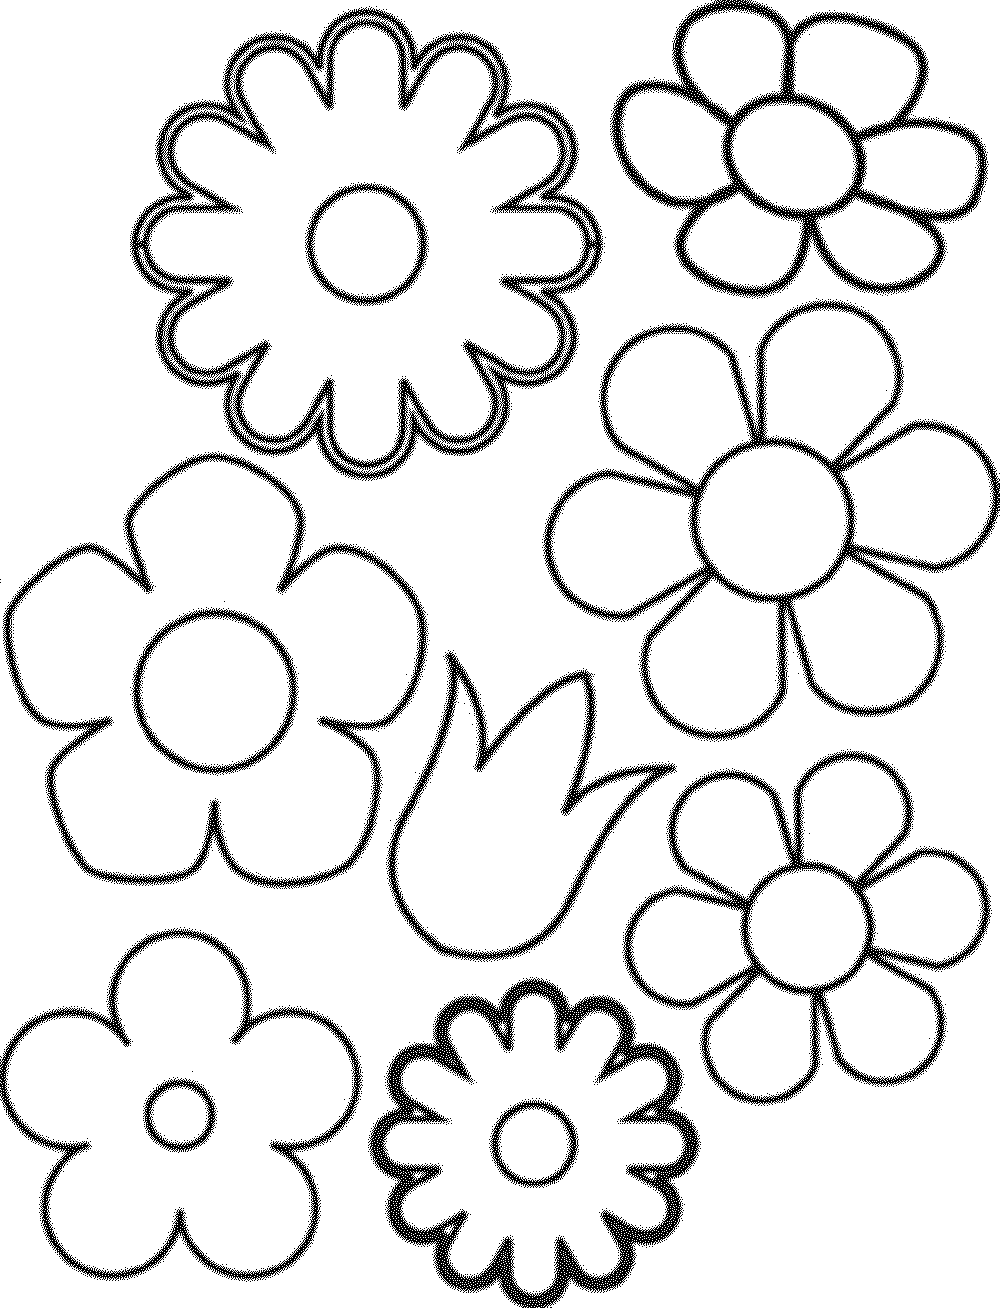 Print Download Some Common Variations Of The Flower Coloring Pages Flower Coloring Pages